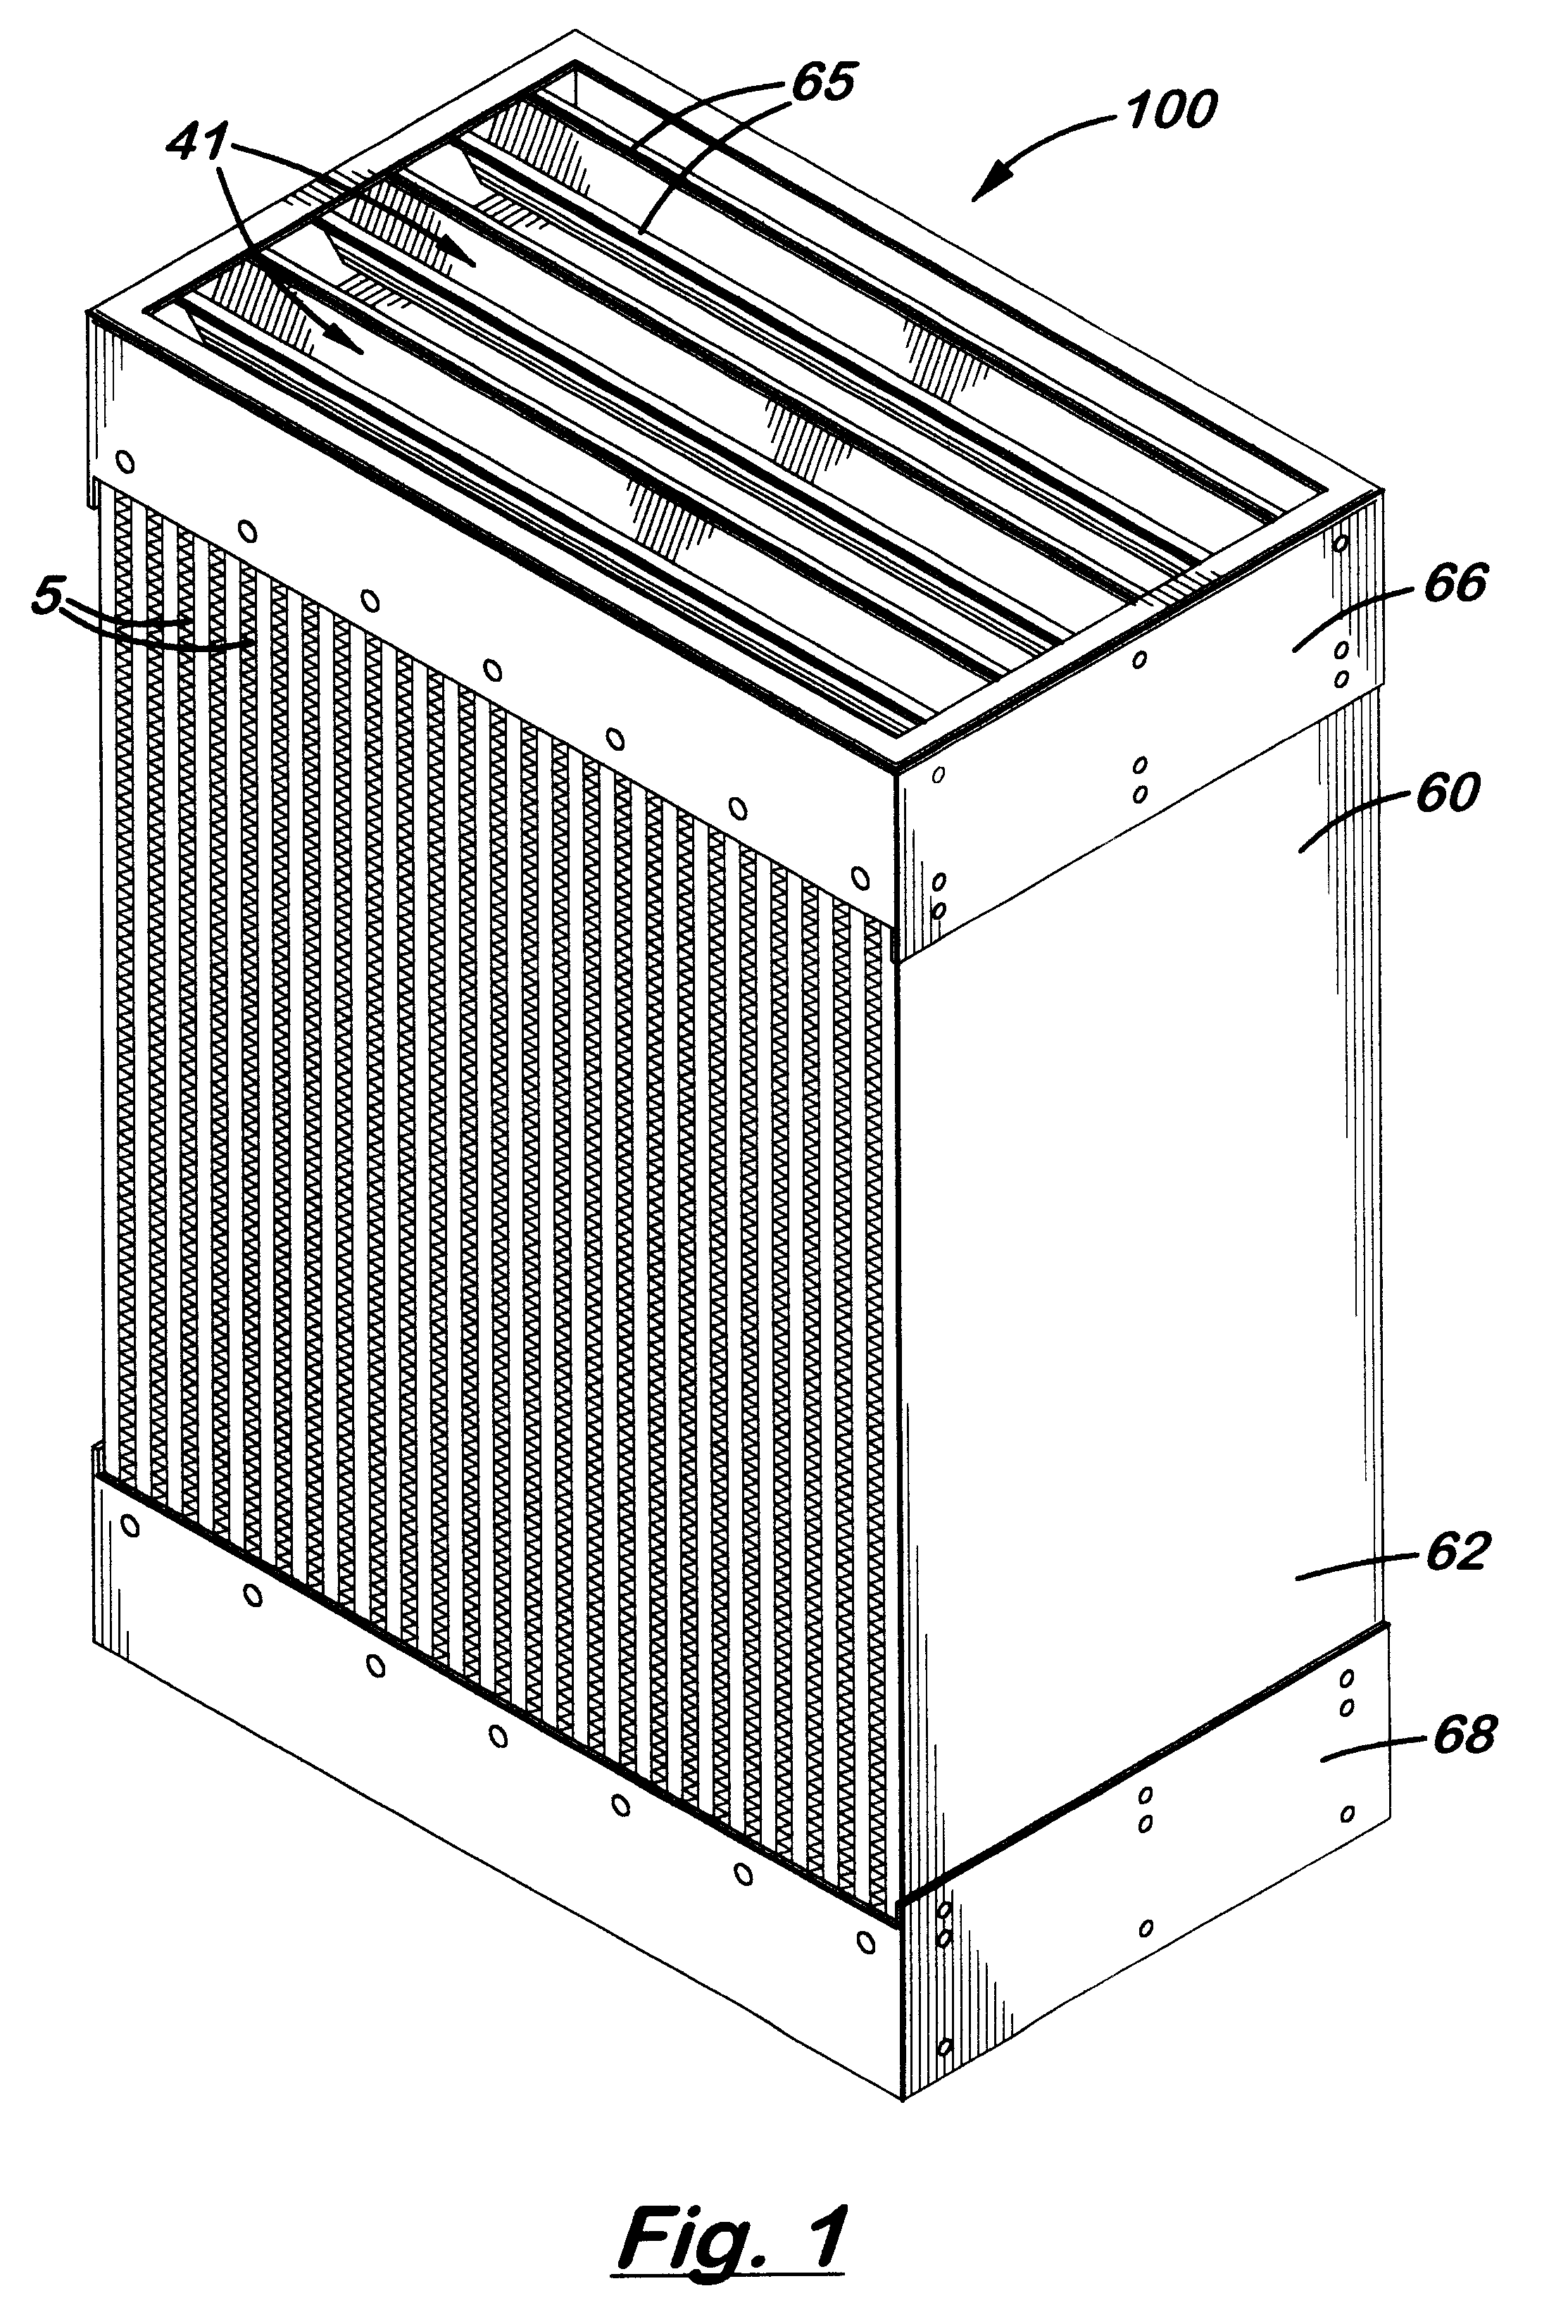 #202020 Patent US6523604 Indirect Evaporative Cooling Apparatus  Highly Rated 4639 Indirect Evaporative Cooling wallpapers with 2227x3300 px on helpvideos.info - Air Conditioners, Air Coolers and more